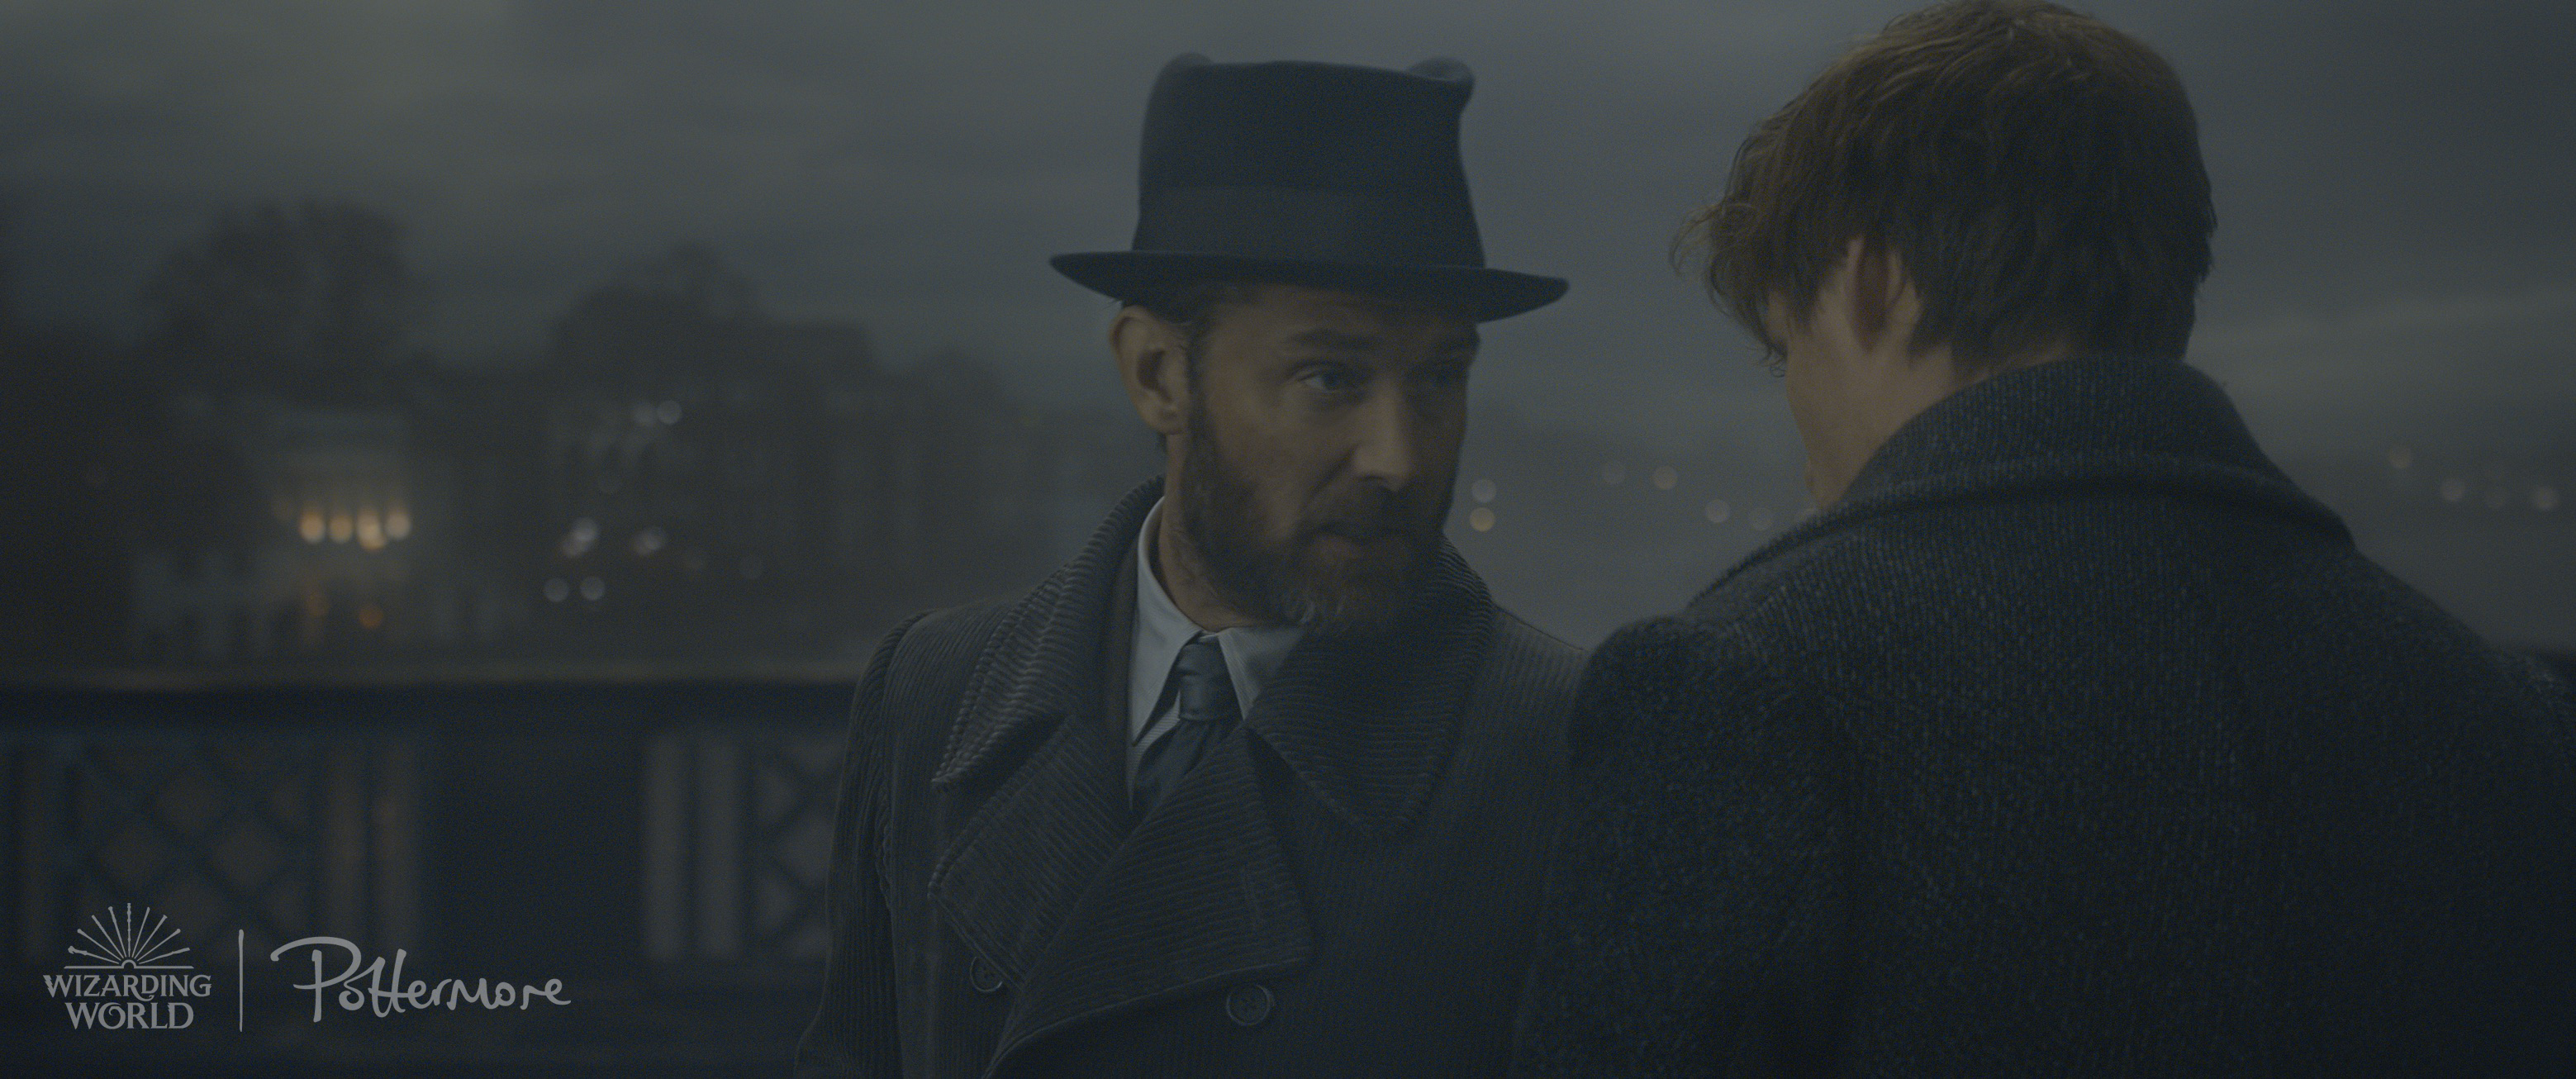 Albus Dumbledore and Newt Scamander in London, from the Fantastic Beasts: Crimes of Grindelwald trailer